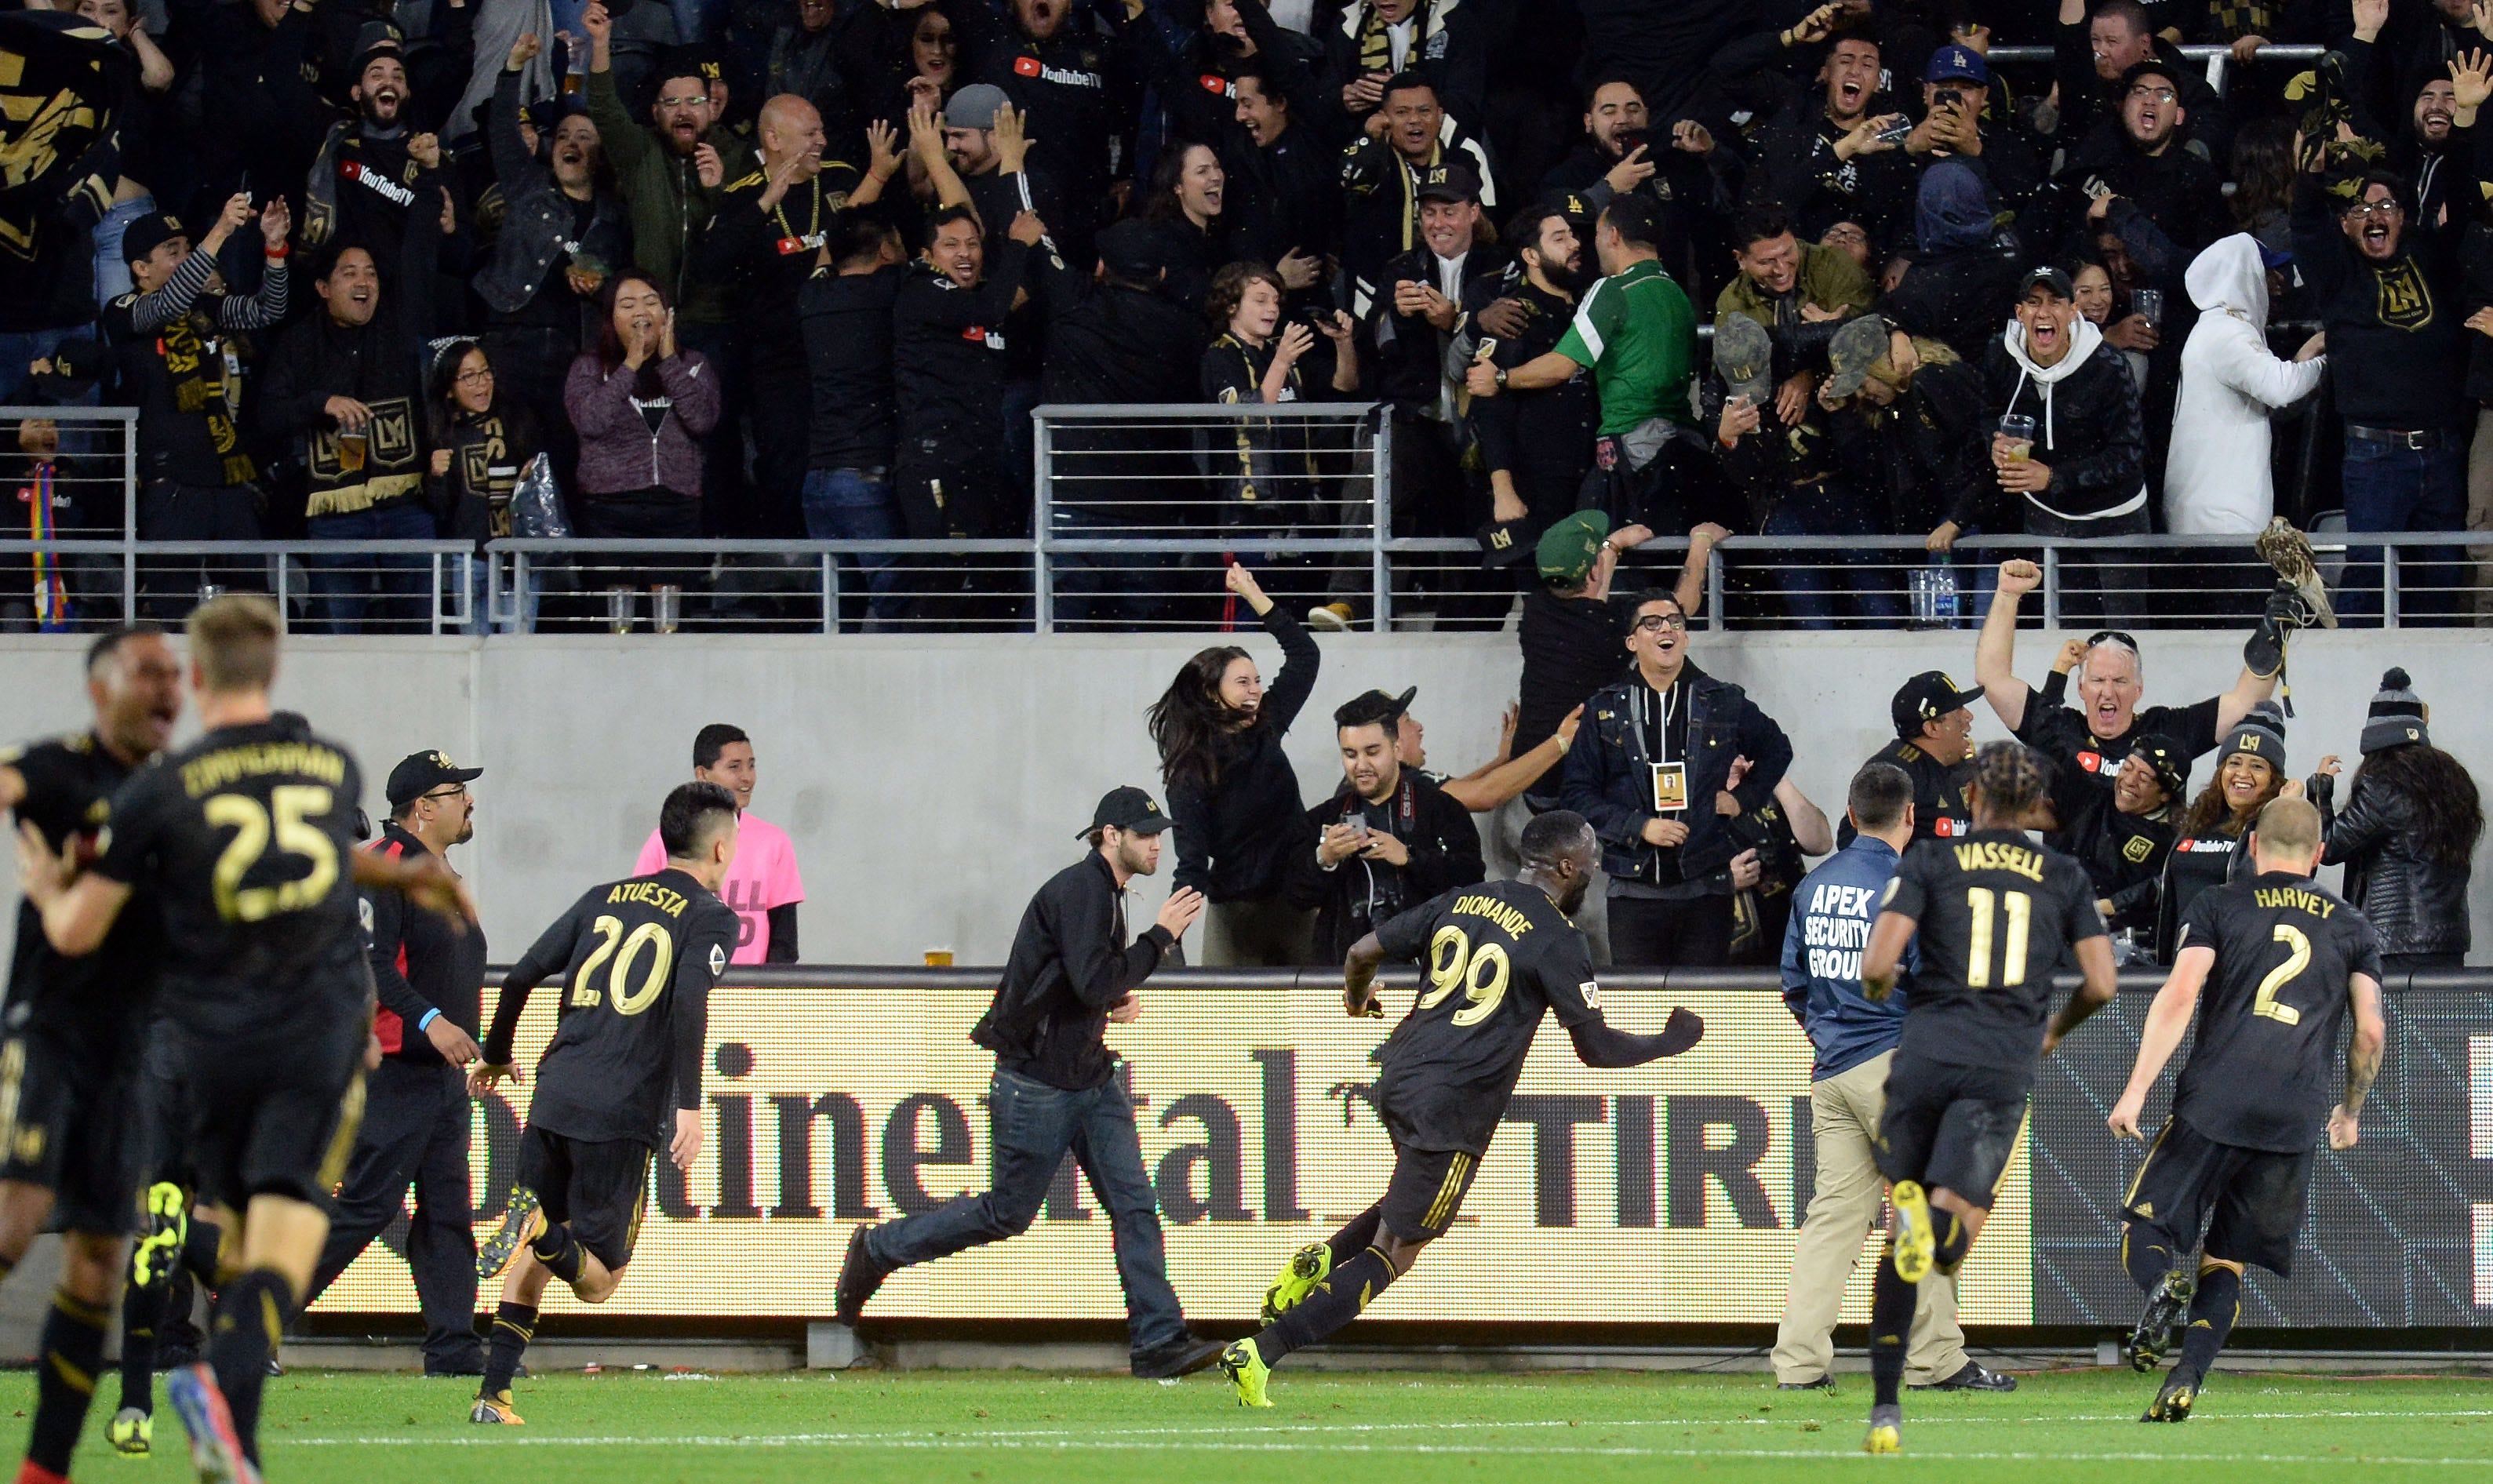 Los Angeles FC forward Adama Diomande (99) celebrates his go-ahead goal in stoppage time against Sporting Kansas City at Banc of California Stadium. LAFC won the game, 2-1.